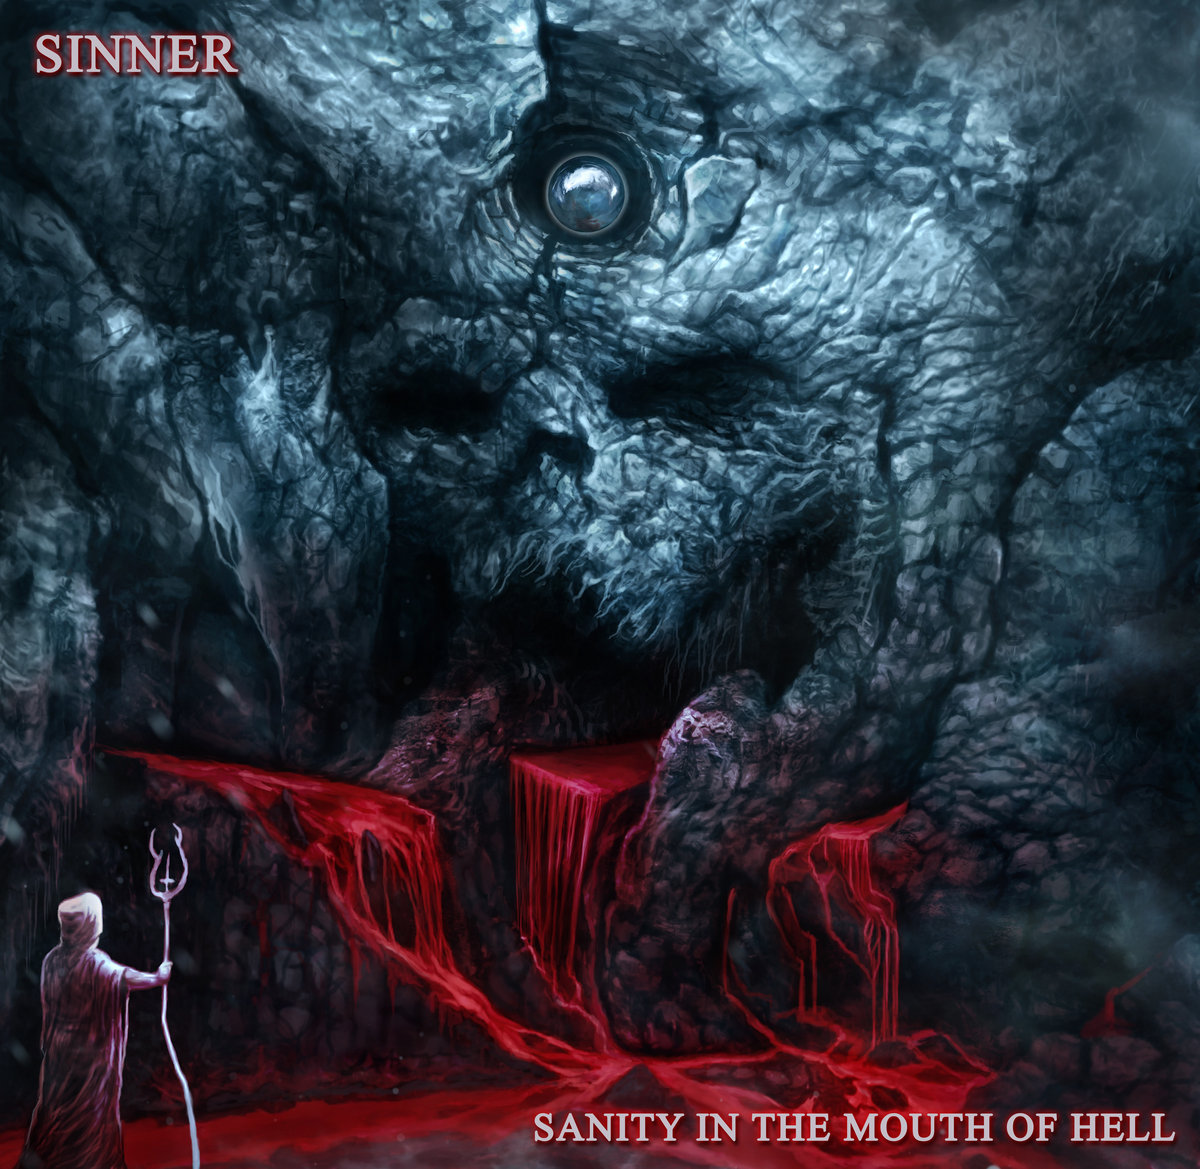 Sinner - Sanity In The Mouth Of Hell (2018)